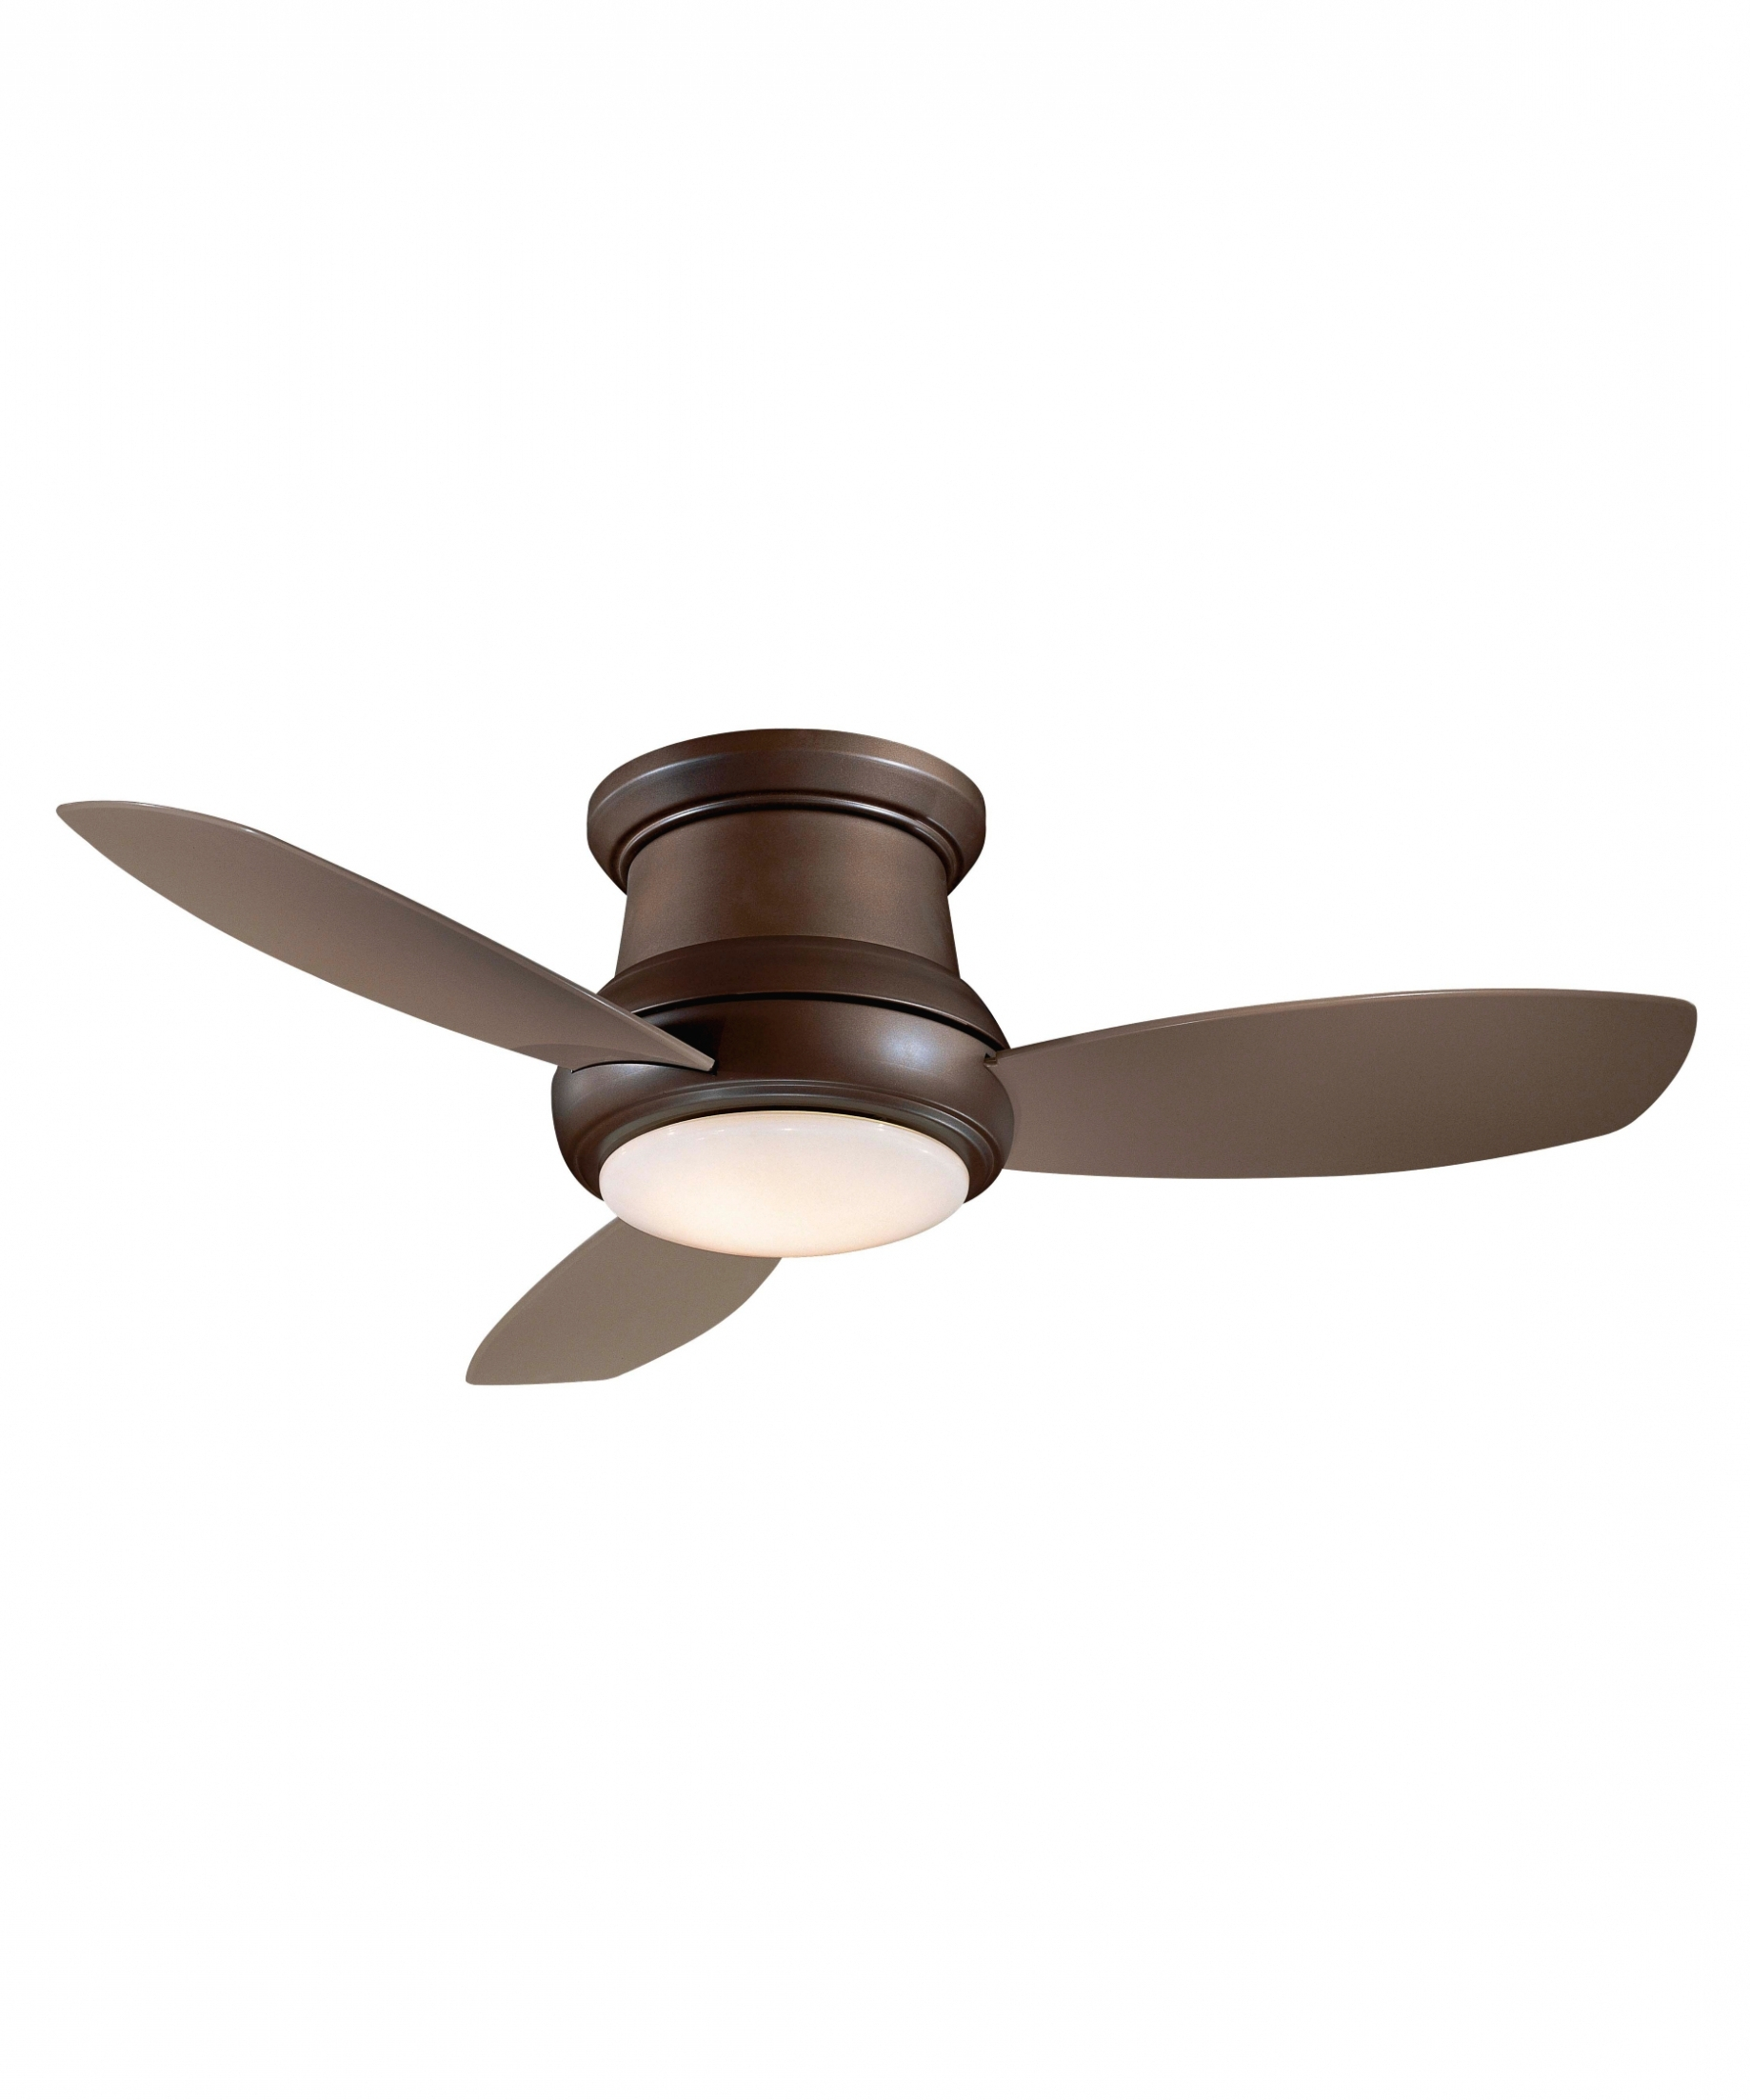 Preferred Home Decor: Growth Flush Mount Outdoor Ceiling Fan With Light Fans Within Flush Mount Outdoor Ceiling Fans (Gallery 15 of 20)